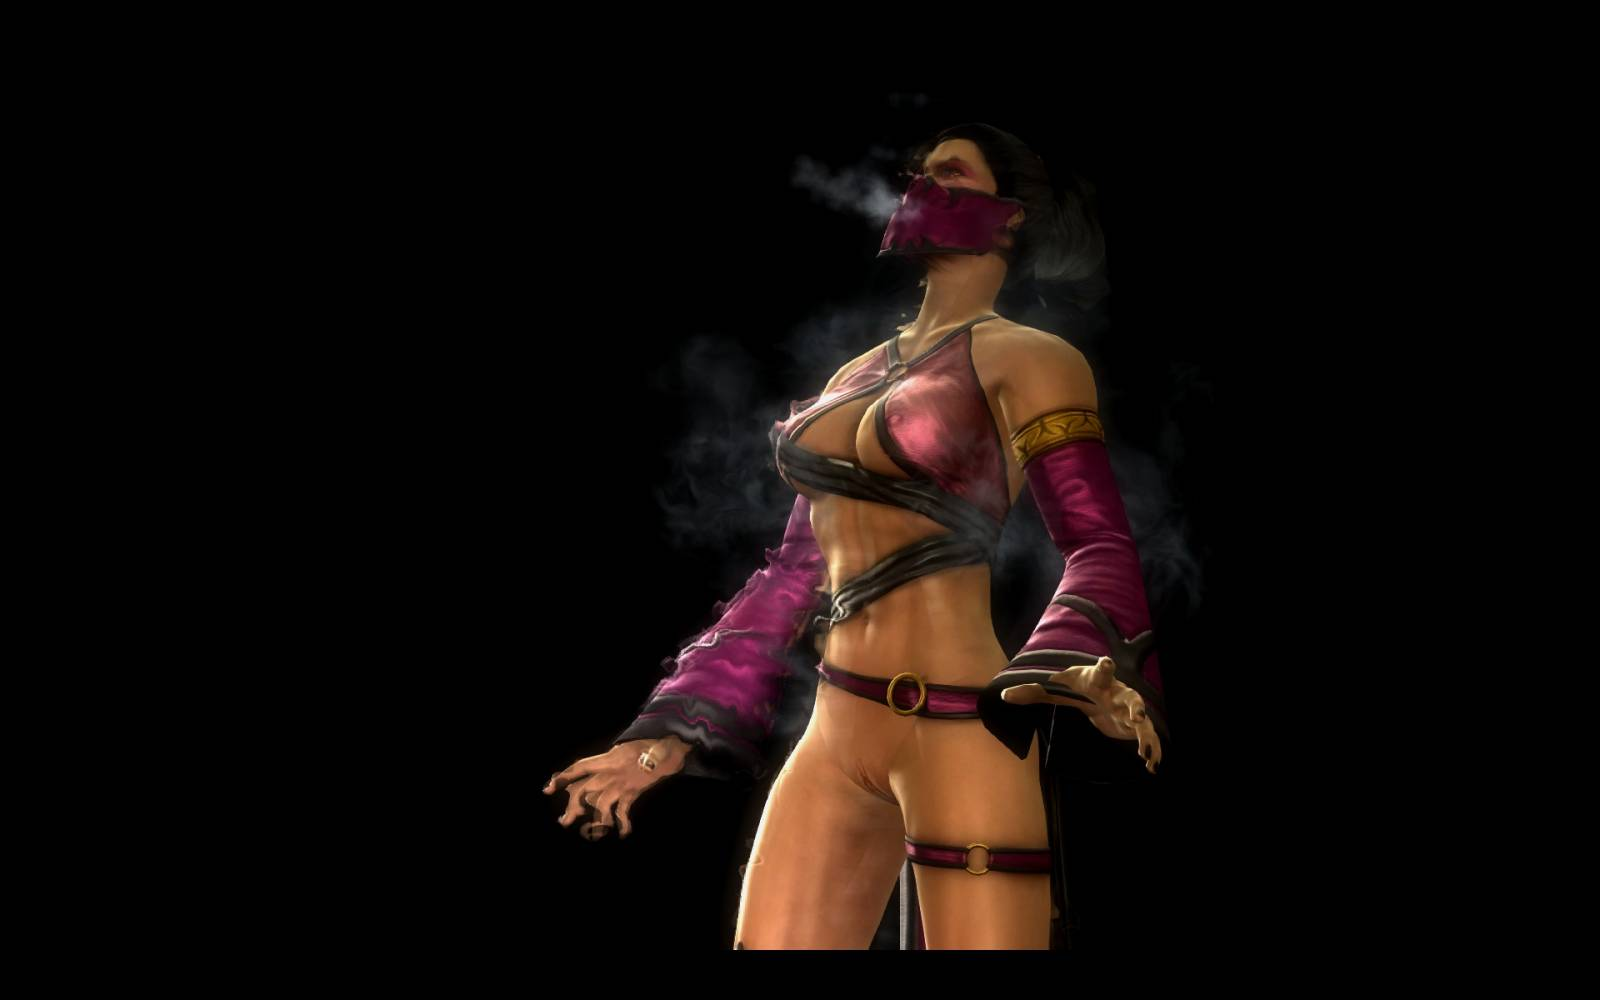 Mortal kombat komplete porn nude video